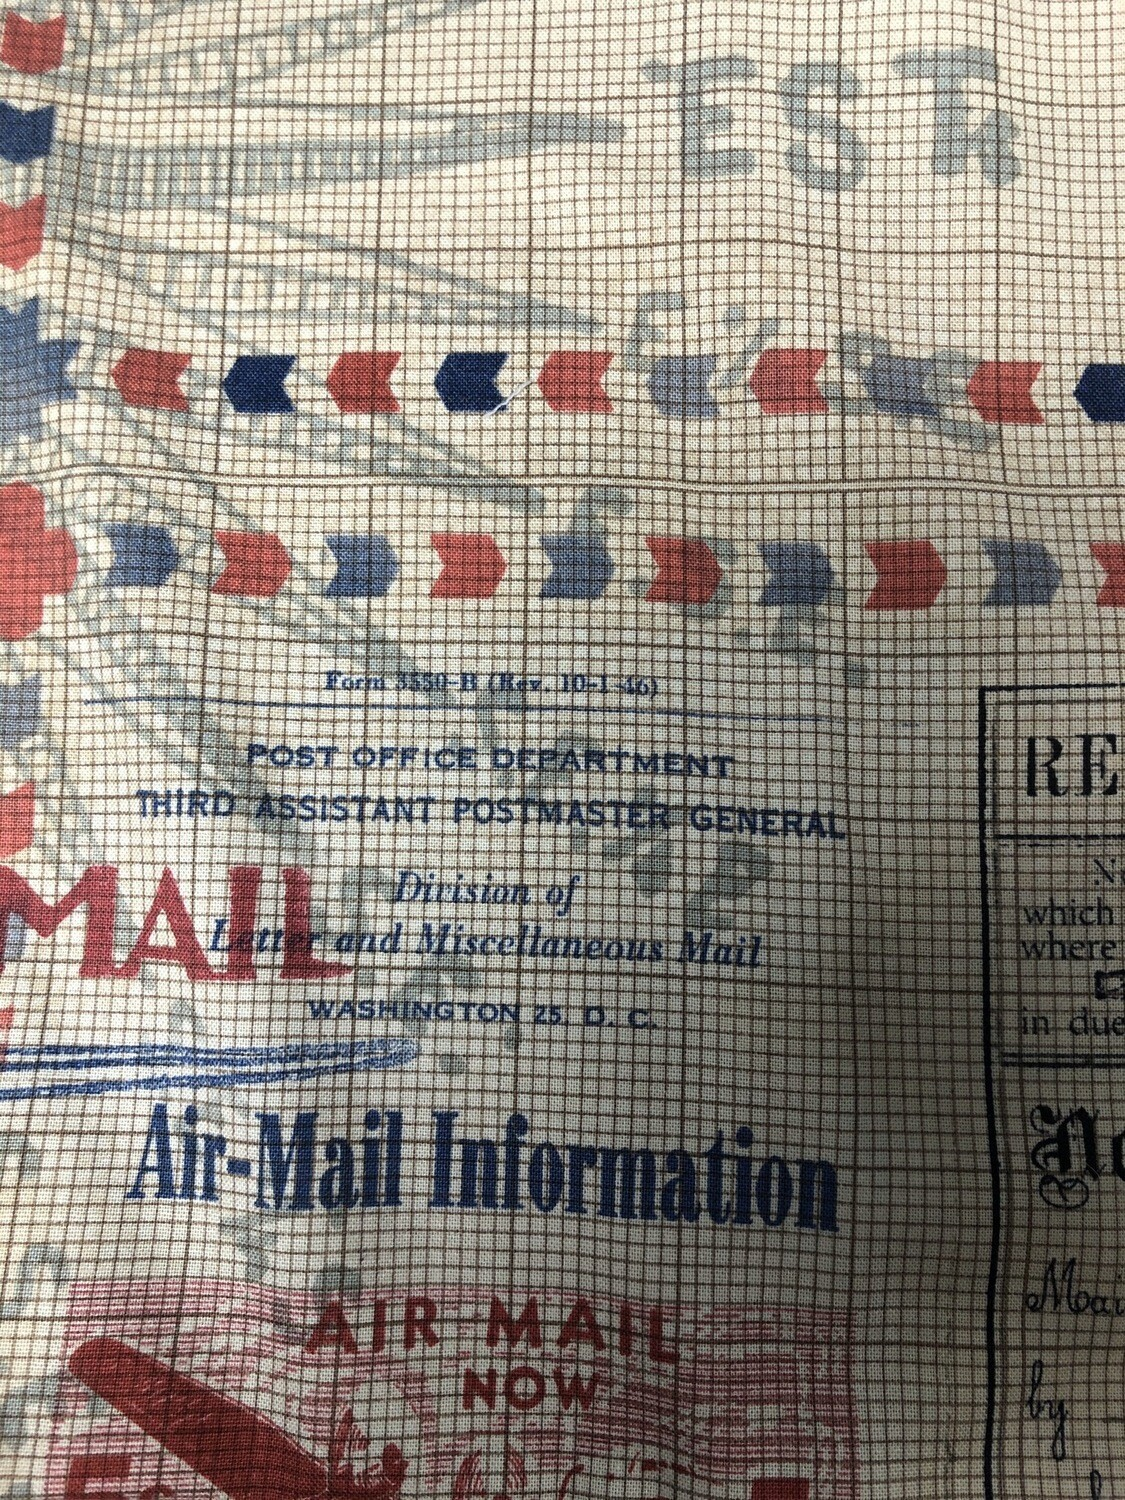 Mail Carrier Print Handmade Face Mask